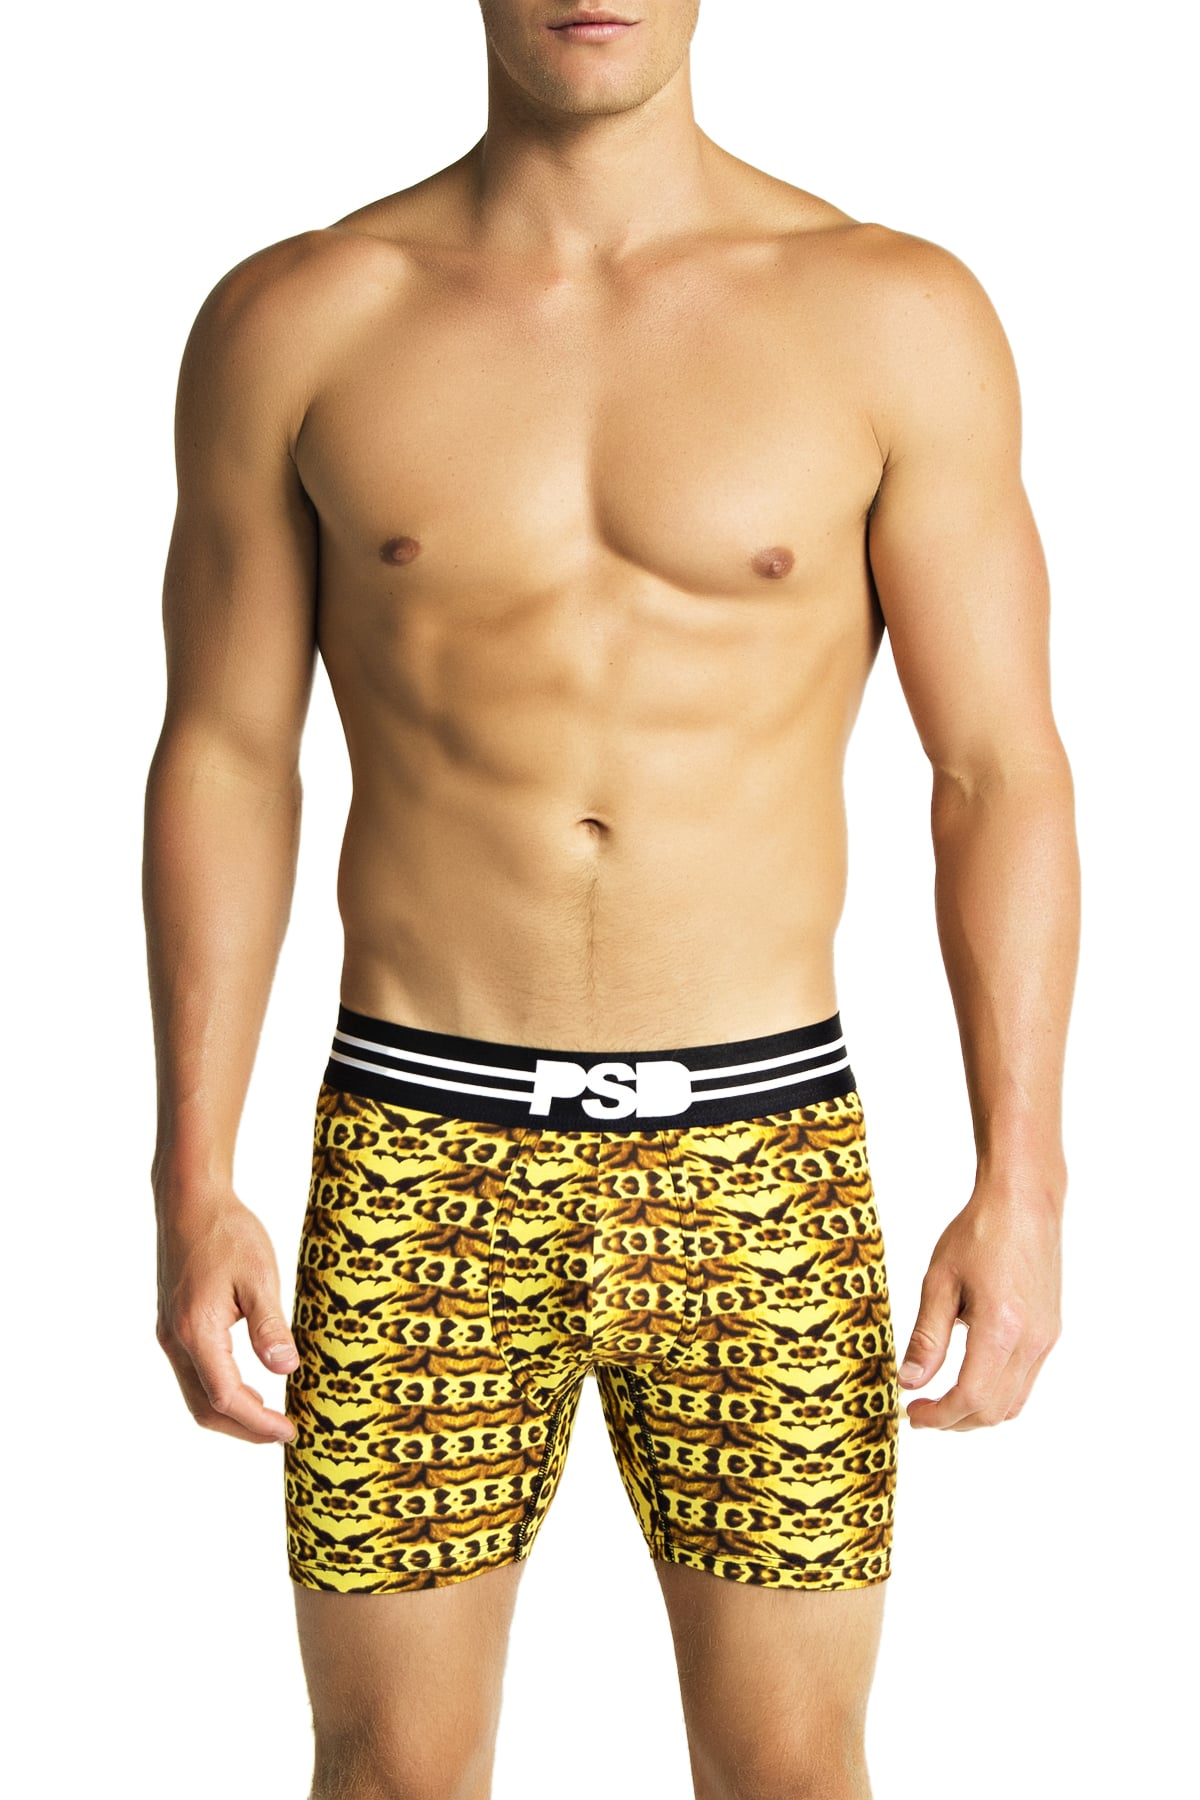 PSD Animal Boxer Brief